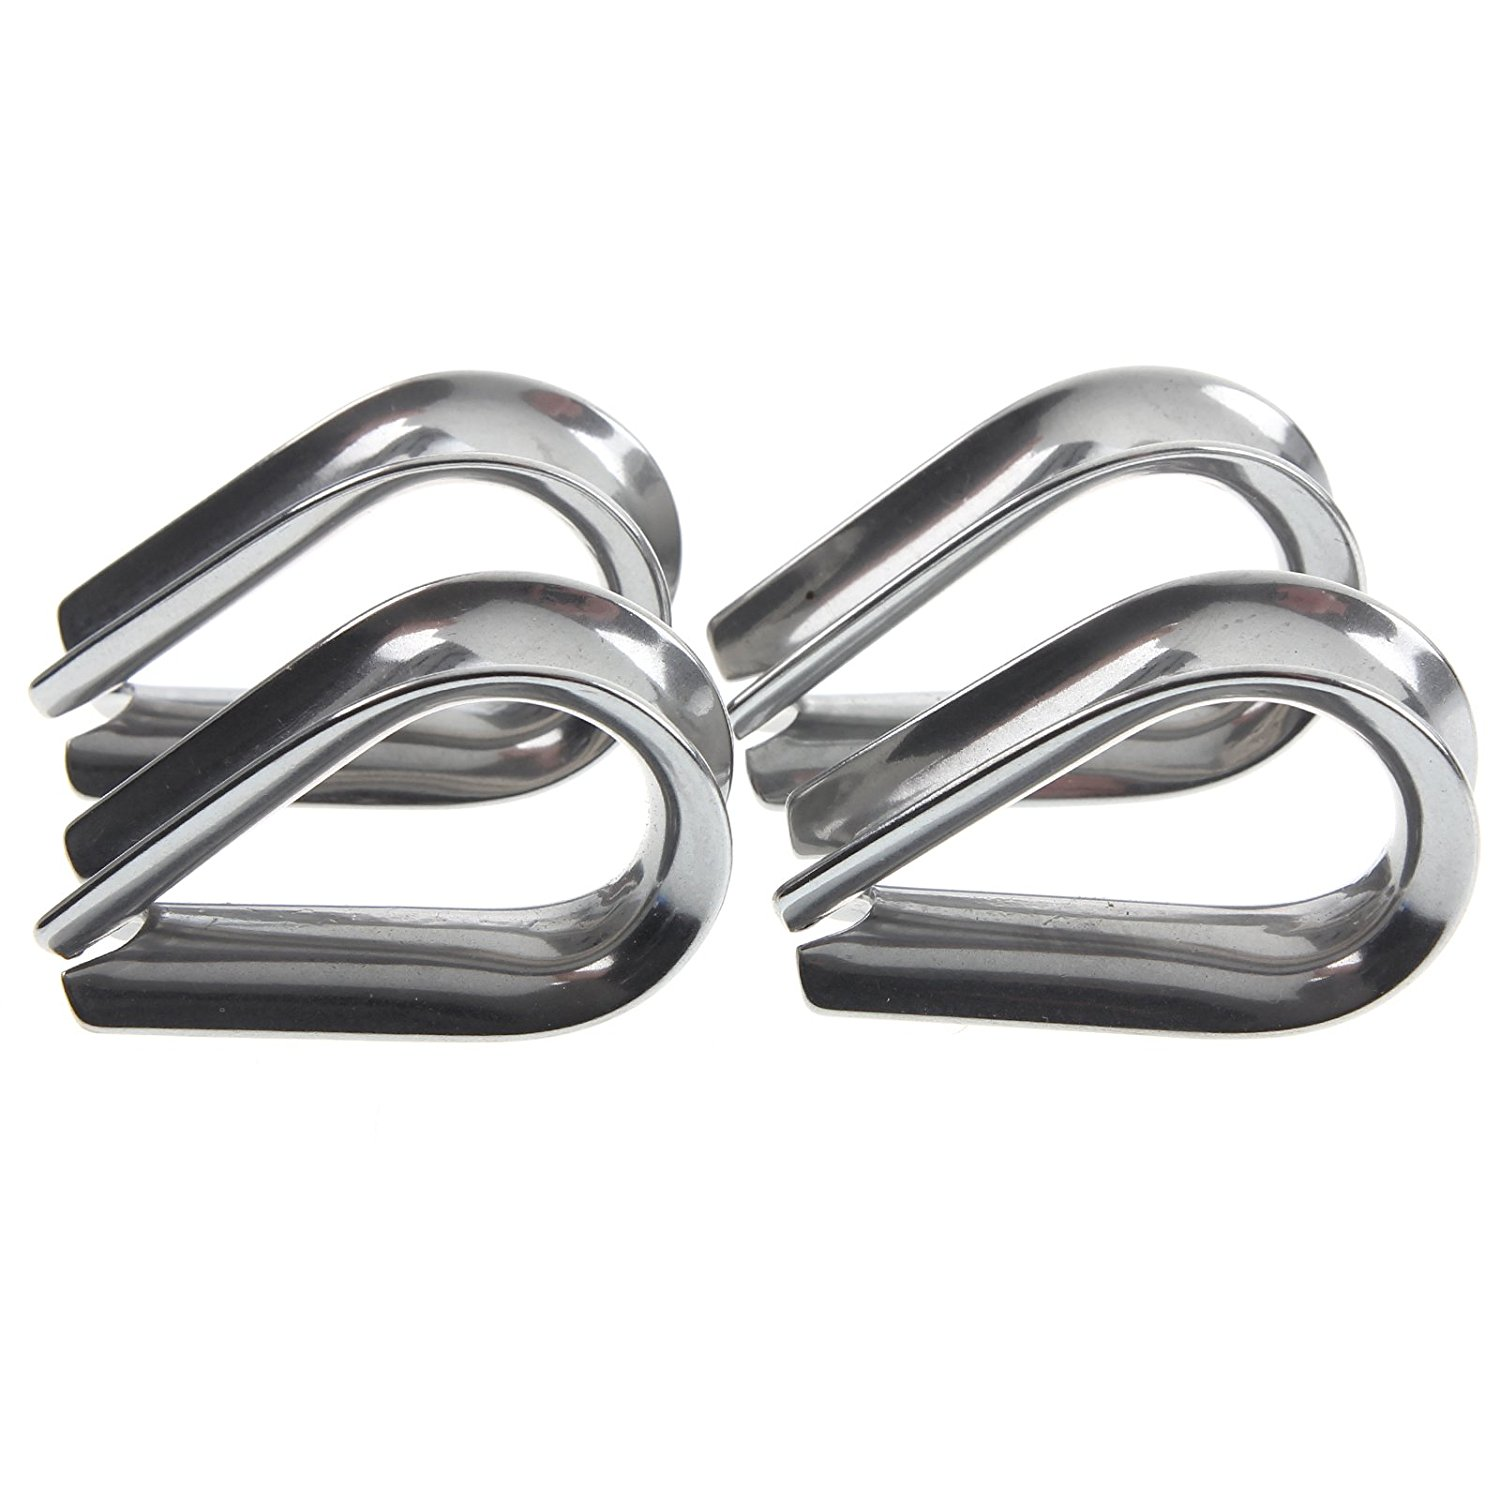 HLZS-4 X Stainless Steel - 3mm Wire Rope Loop Rope Thimbles